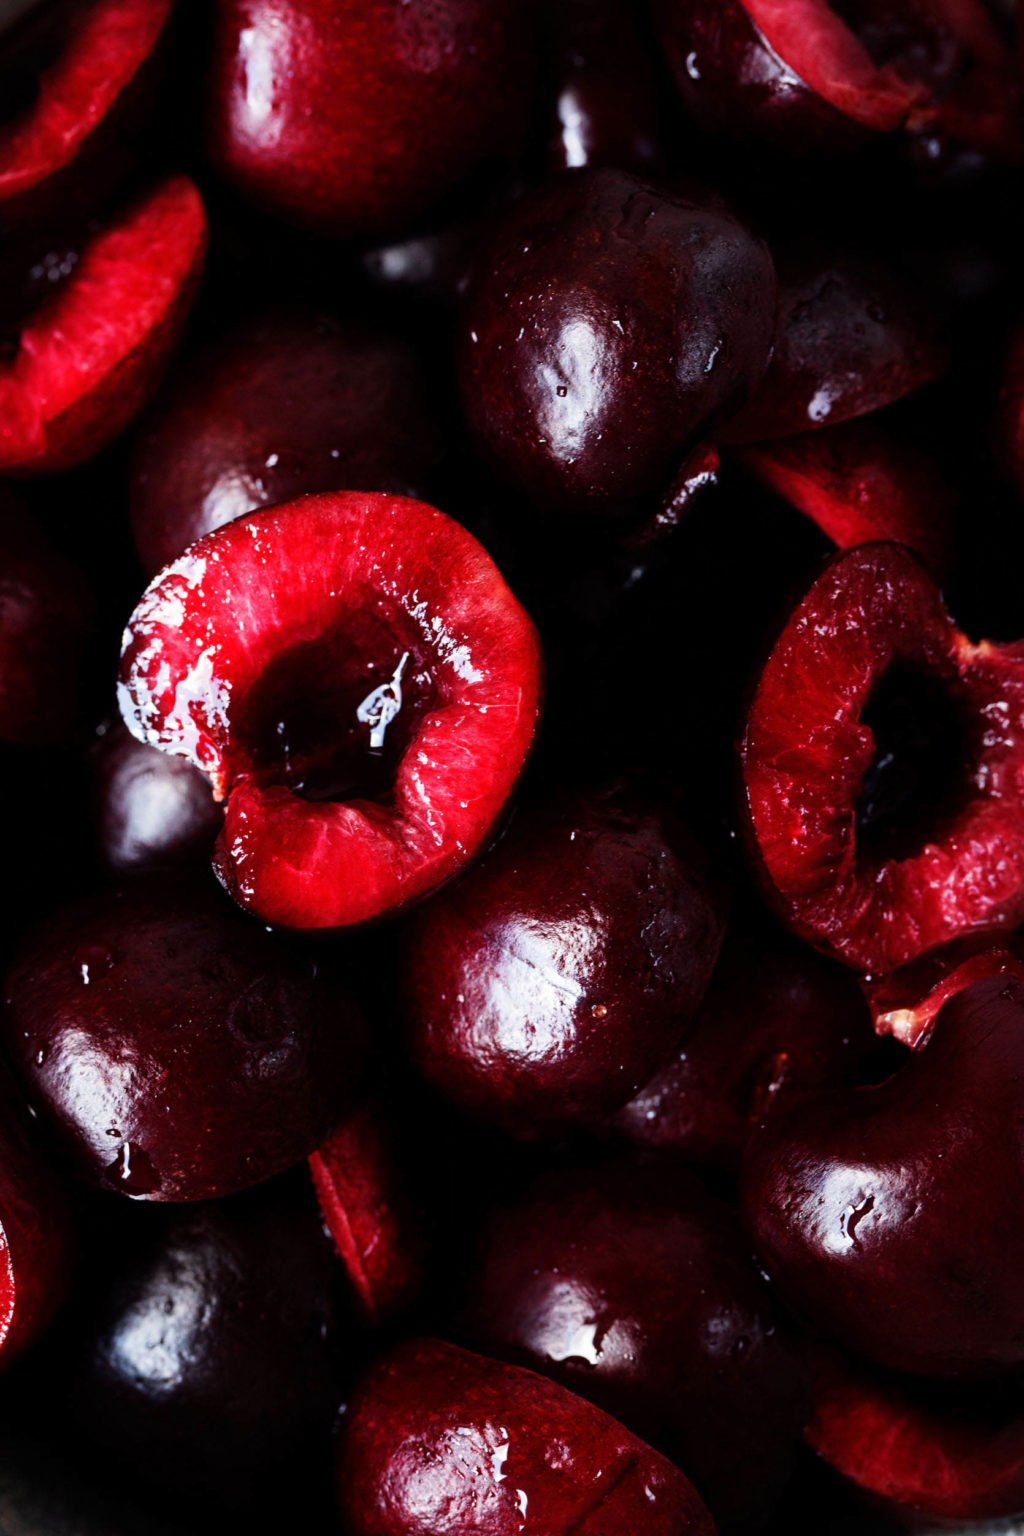 A zoomed in photograph of cut, dark red stone fruits.